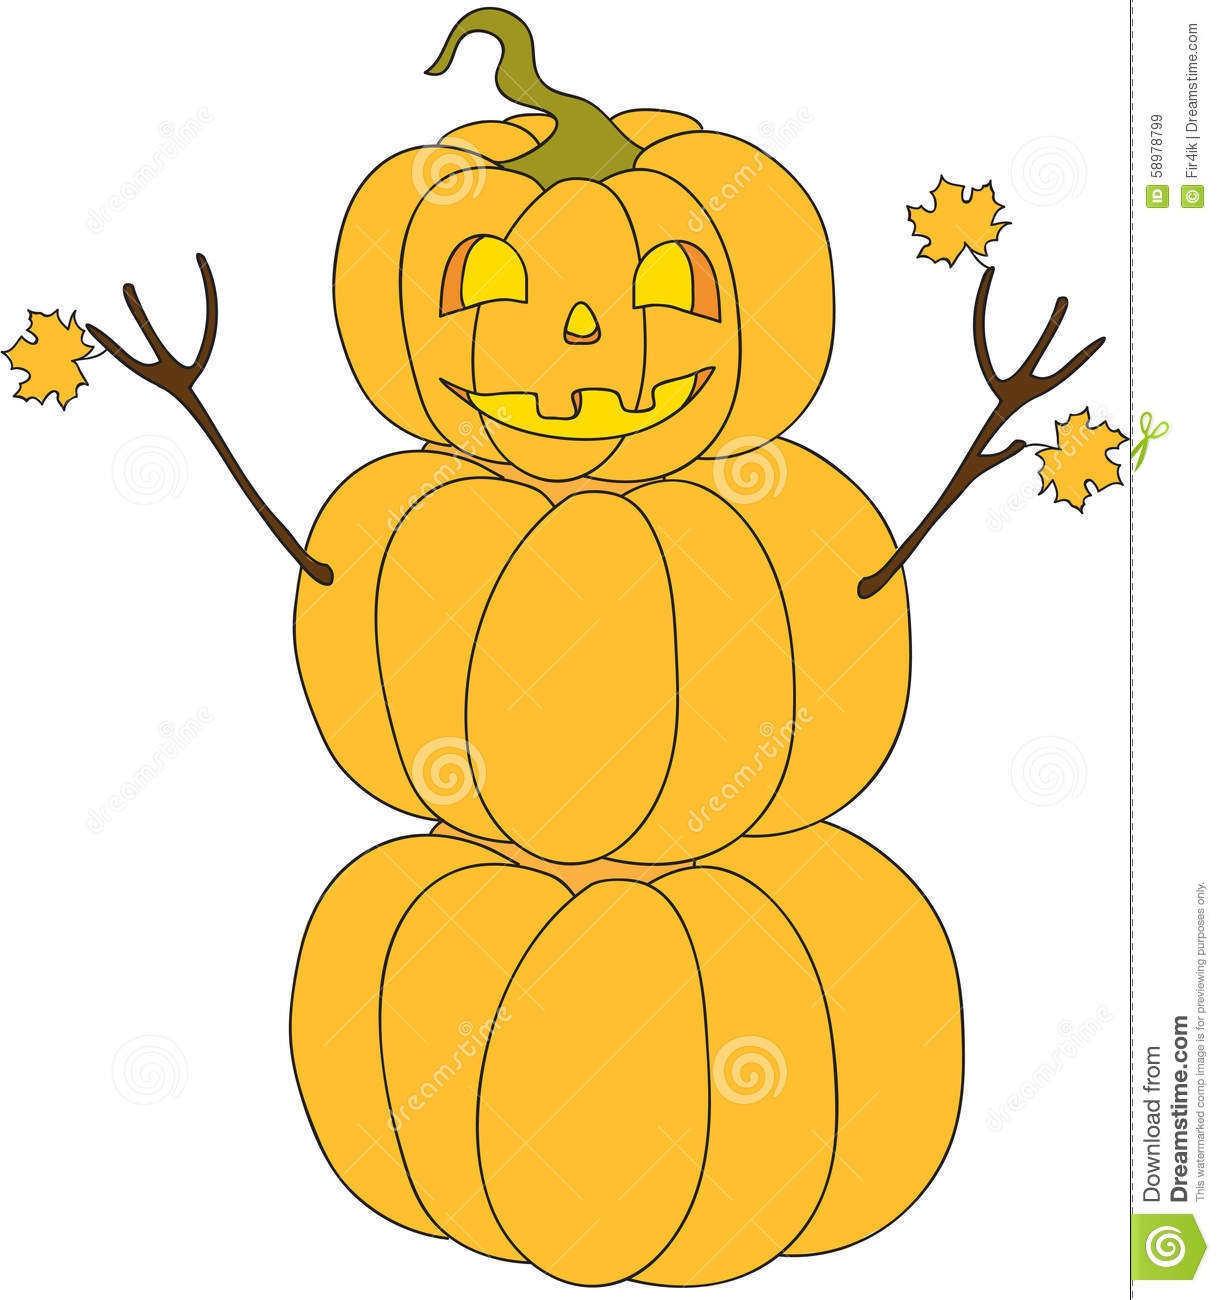 fall leaves coloring pages - stock illustration halloween pumpkin snowman cartoon character vector illustration image